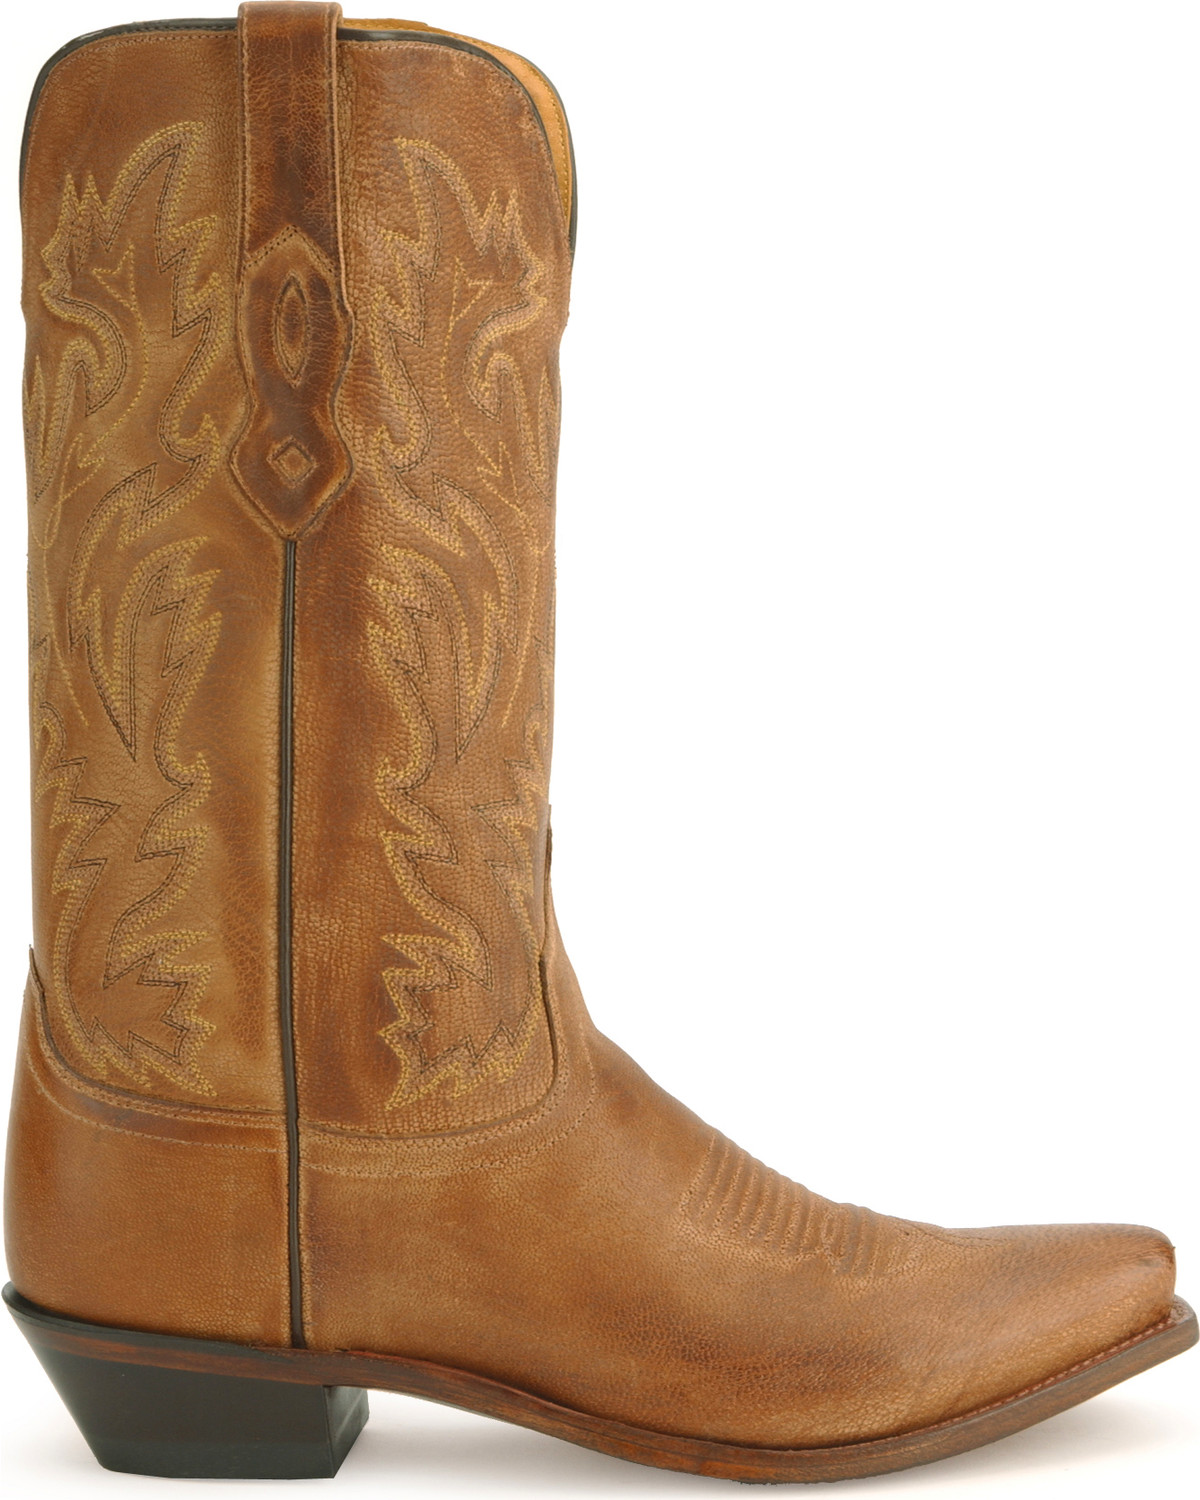 Old West Contemporary Cowboy Boots Sheplers